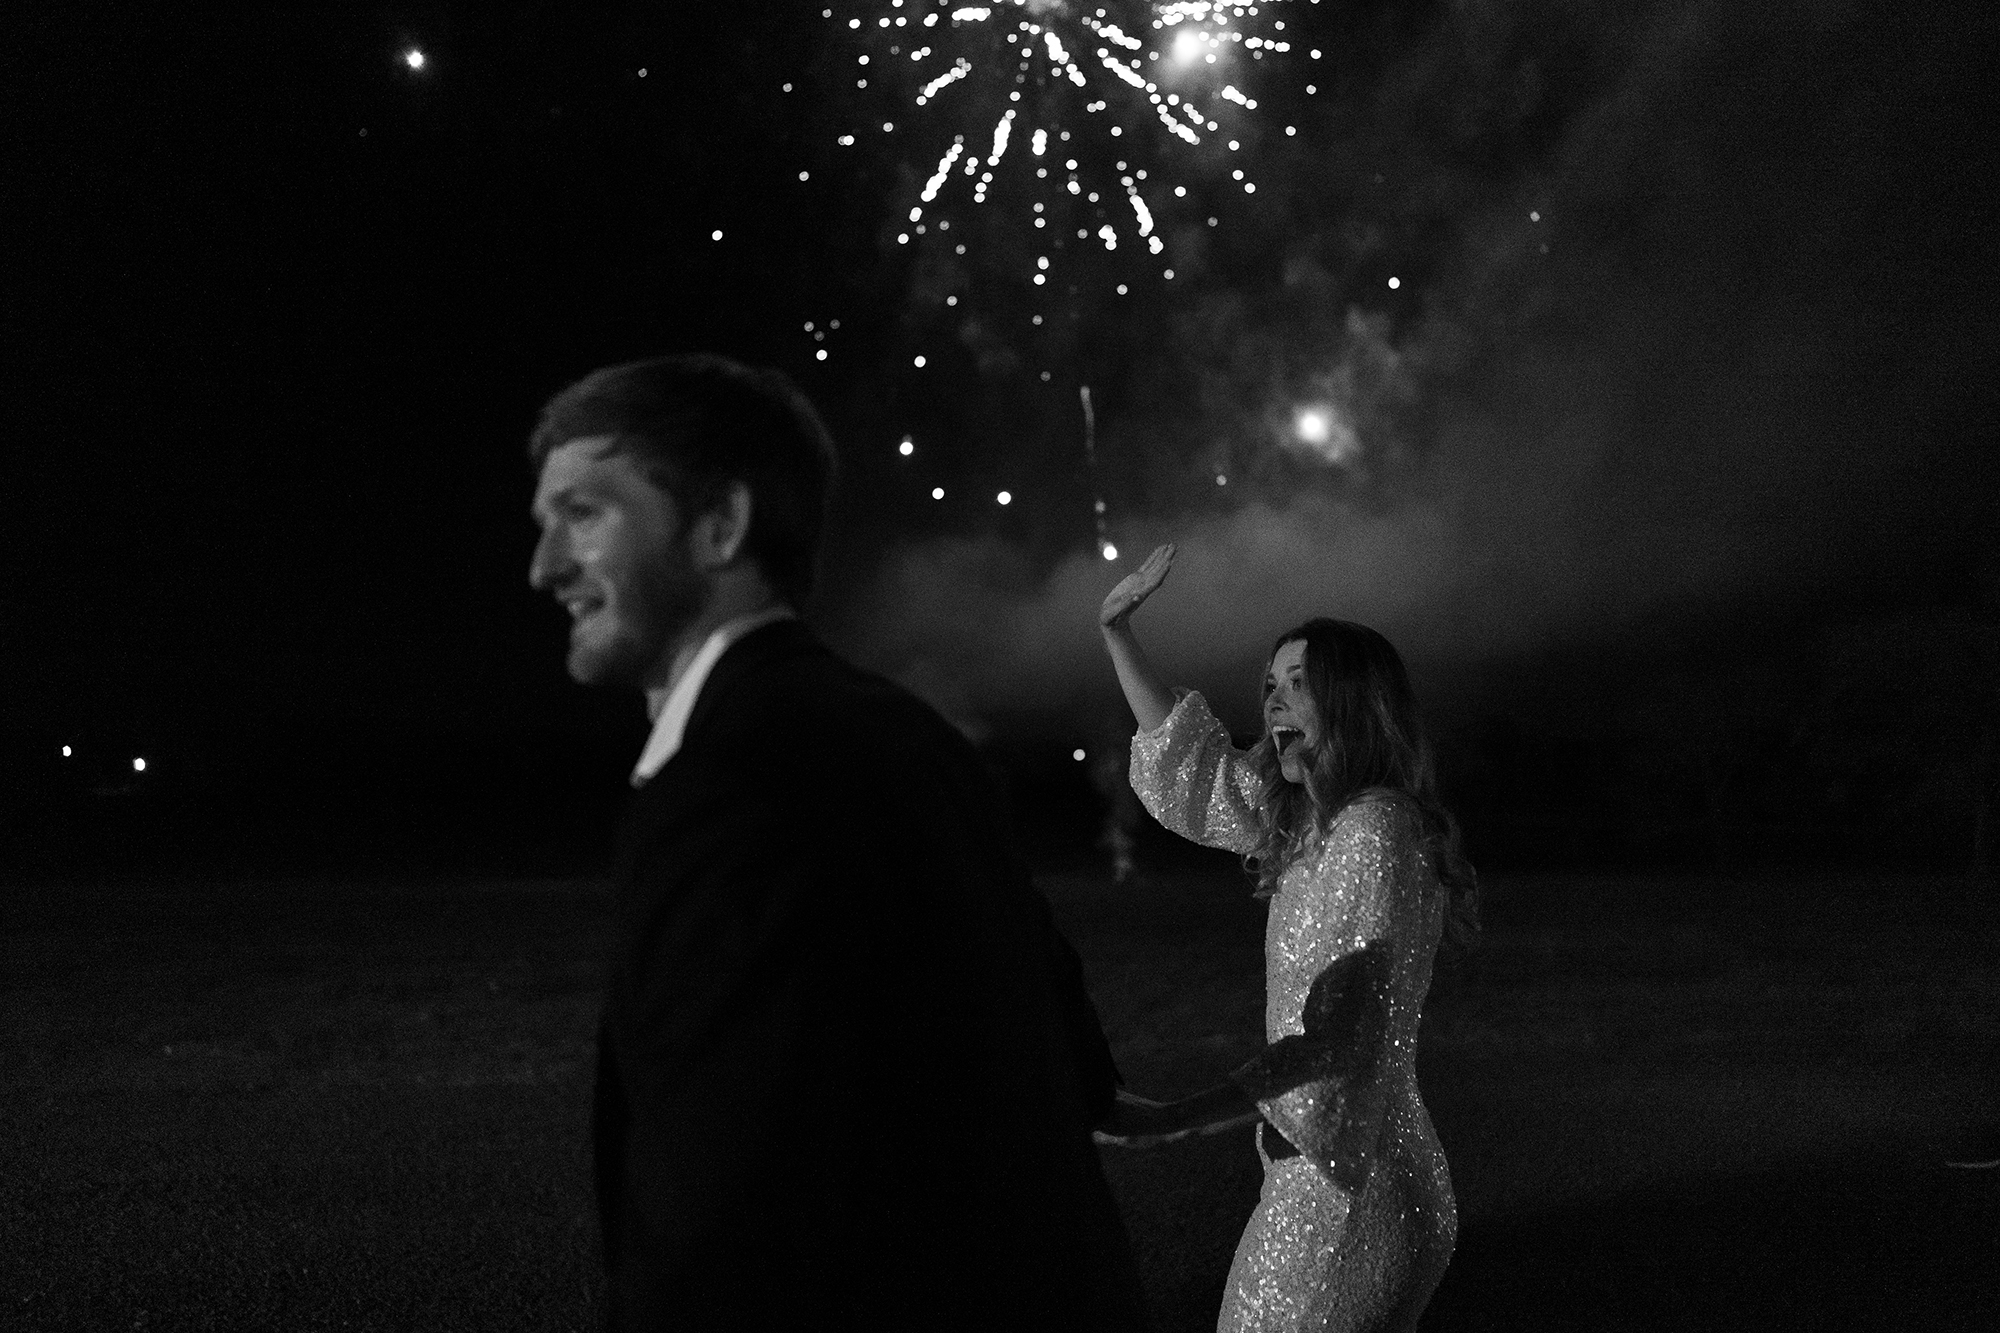 The bride and groom waving to their guests as they leave the reception with fireworks behind them.